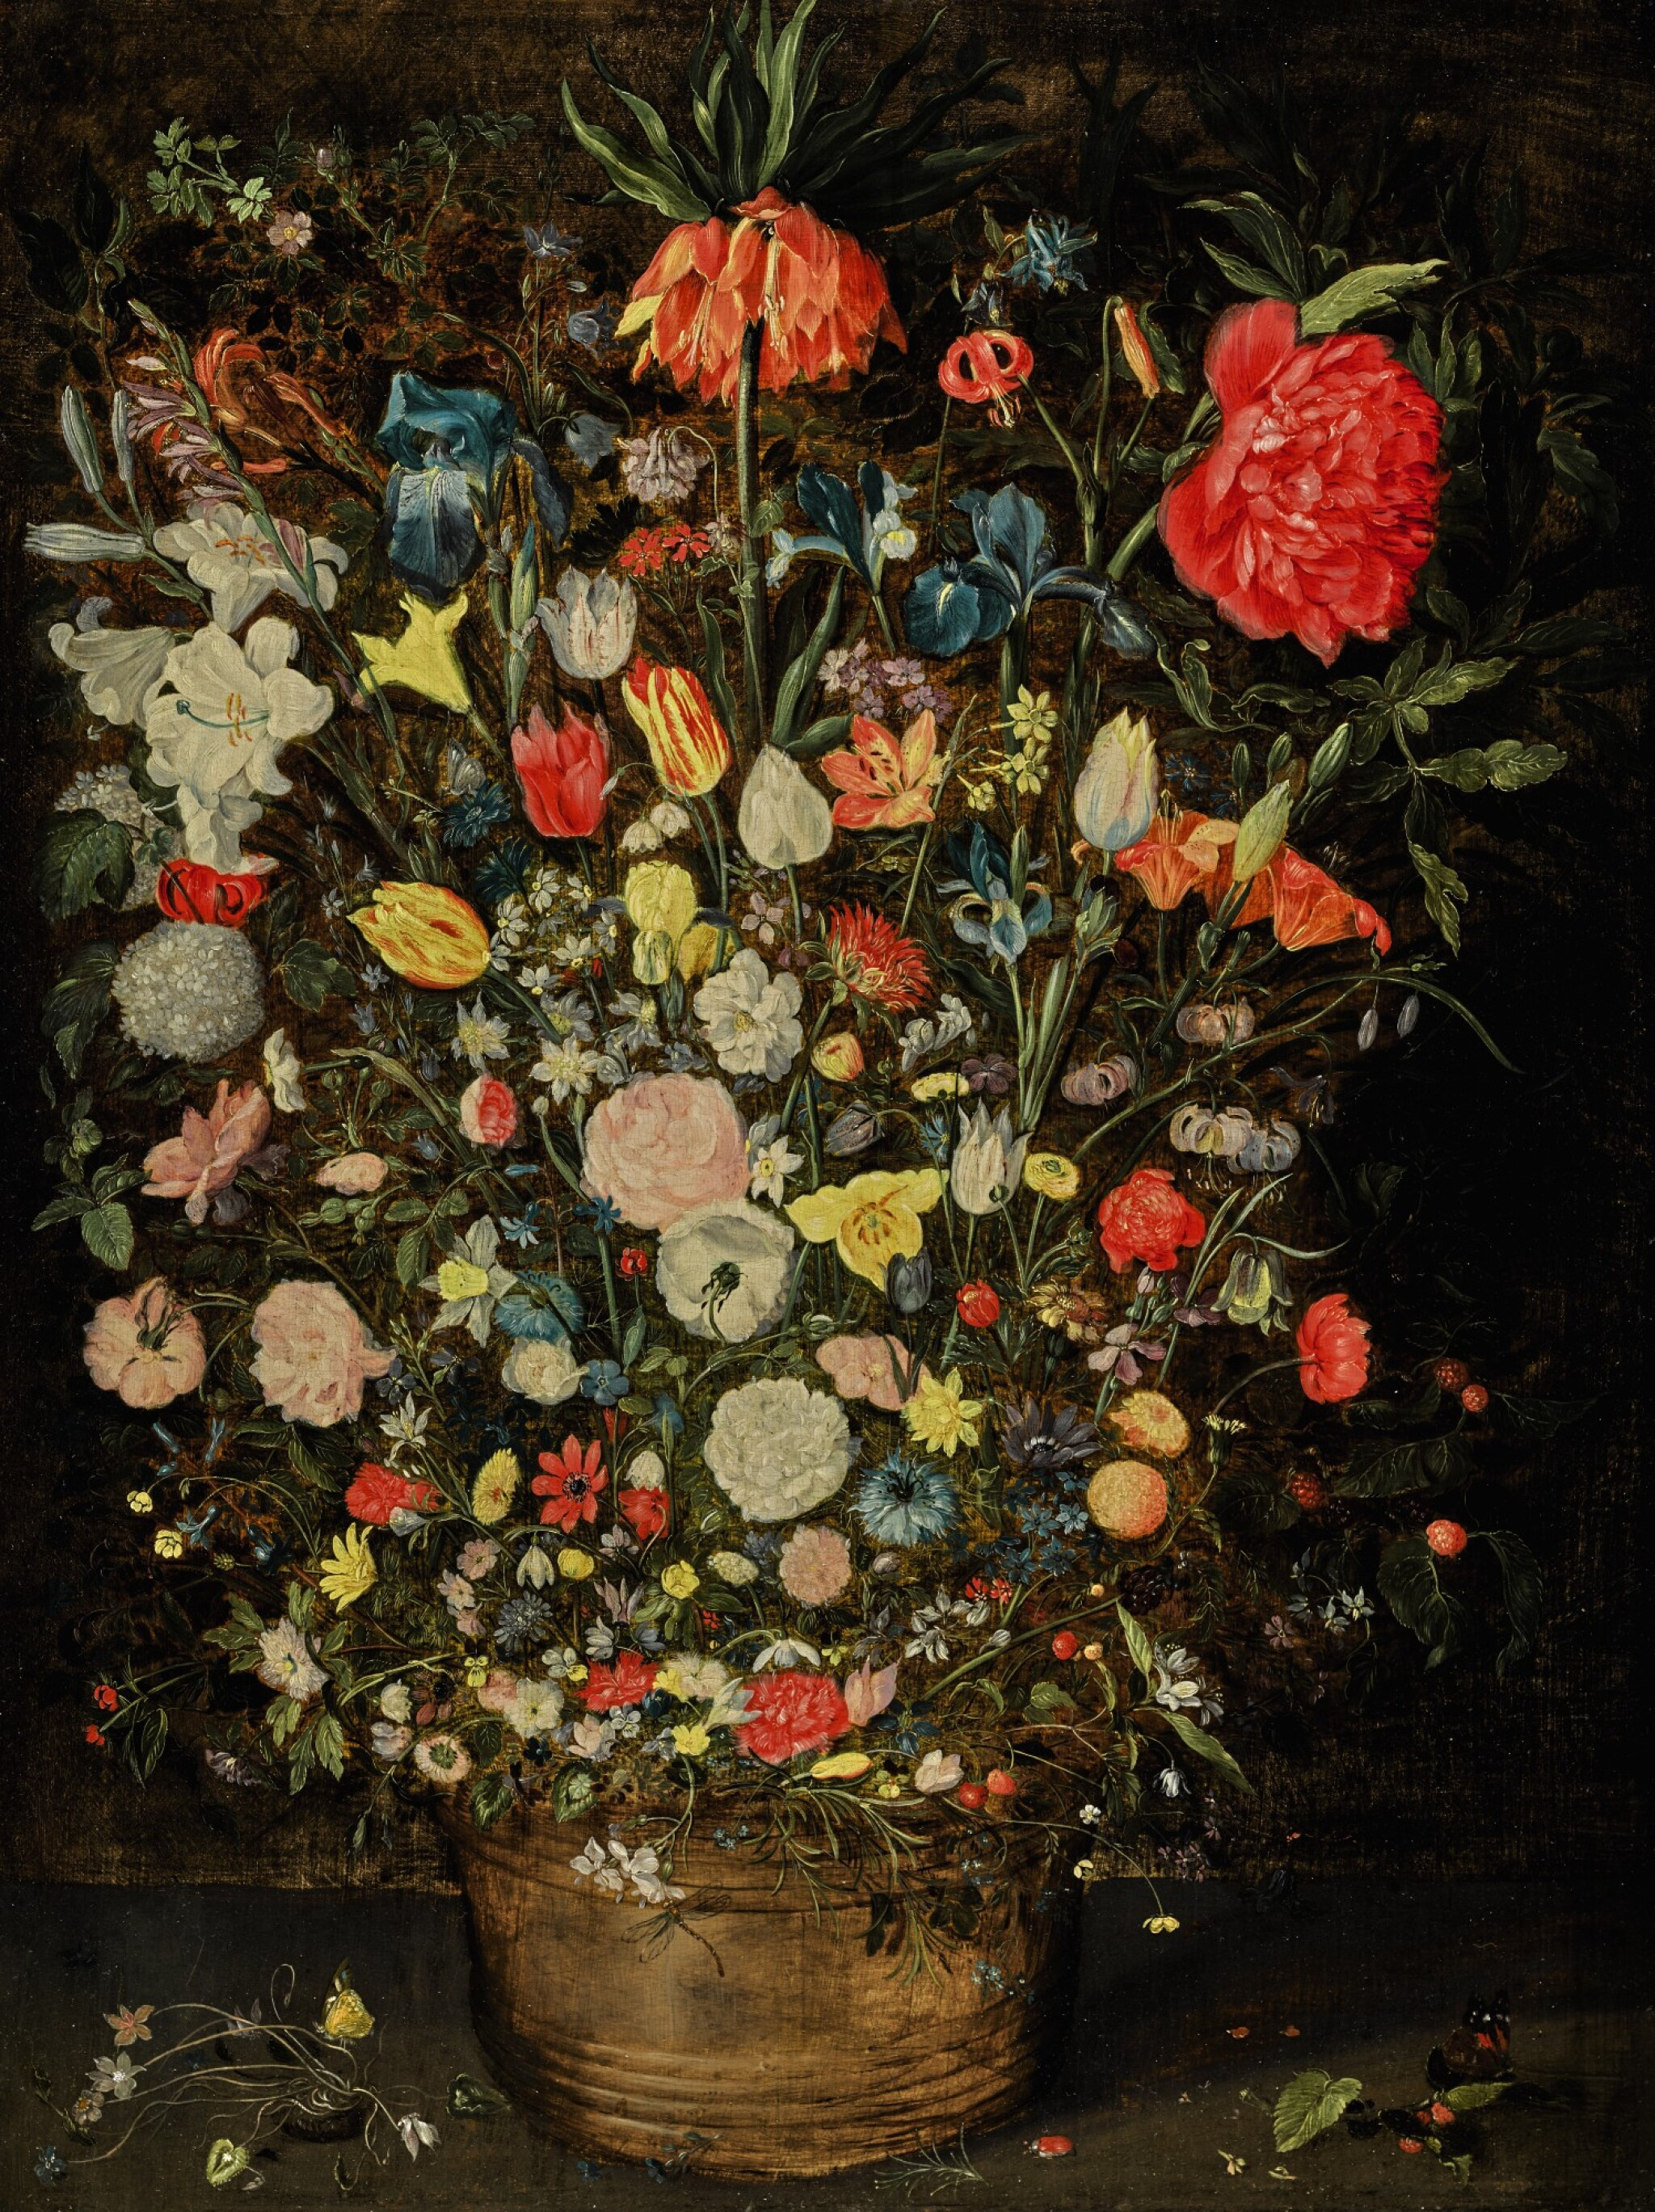 View 1 of Lot 25. Still life with a large bouquet of flowers in a wooden bucket, including a crown imperial lily, roses, tulips and other flowers, with butterflies, insects and berries on the shelf beneath |《靜物畫:木盆裡的大束鮮花,包括一朵冠花貝母、玫瑰、鬱金香,盆架上有蝴蝶、昆蟲、莓果》.